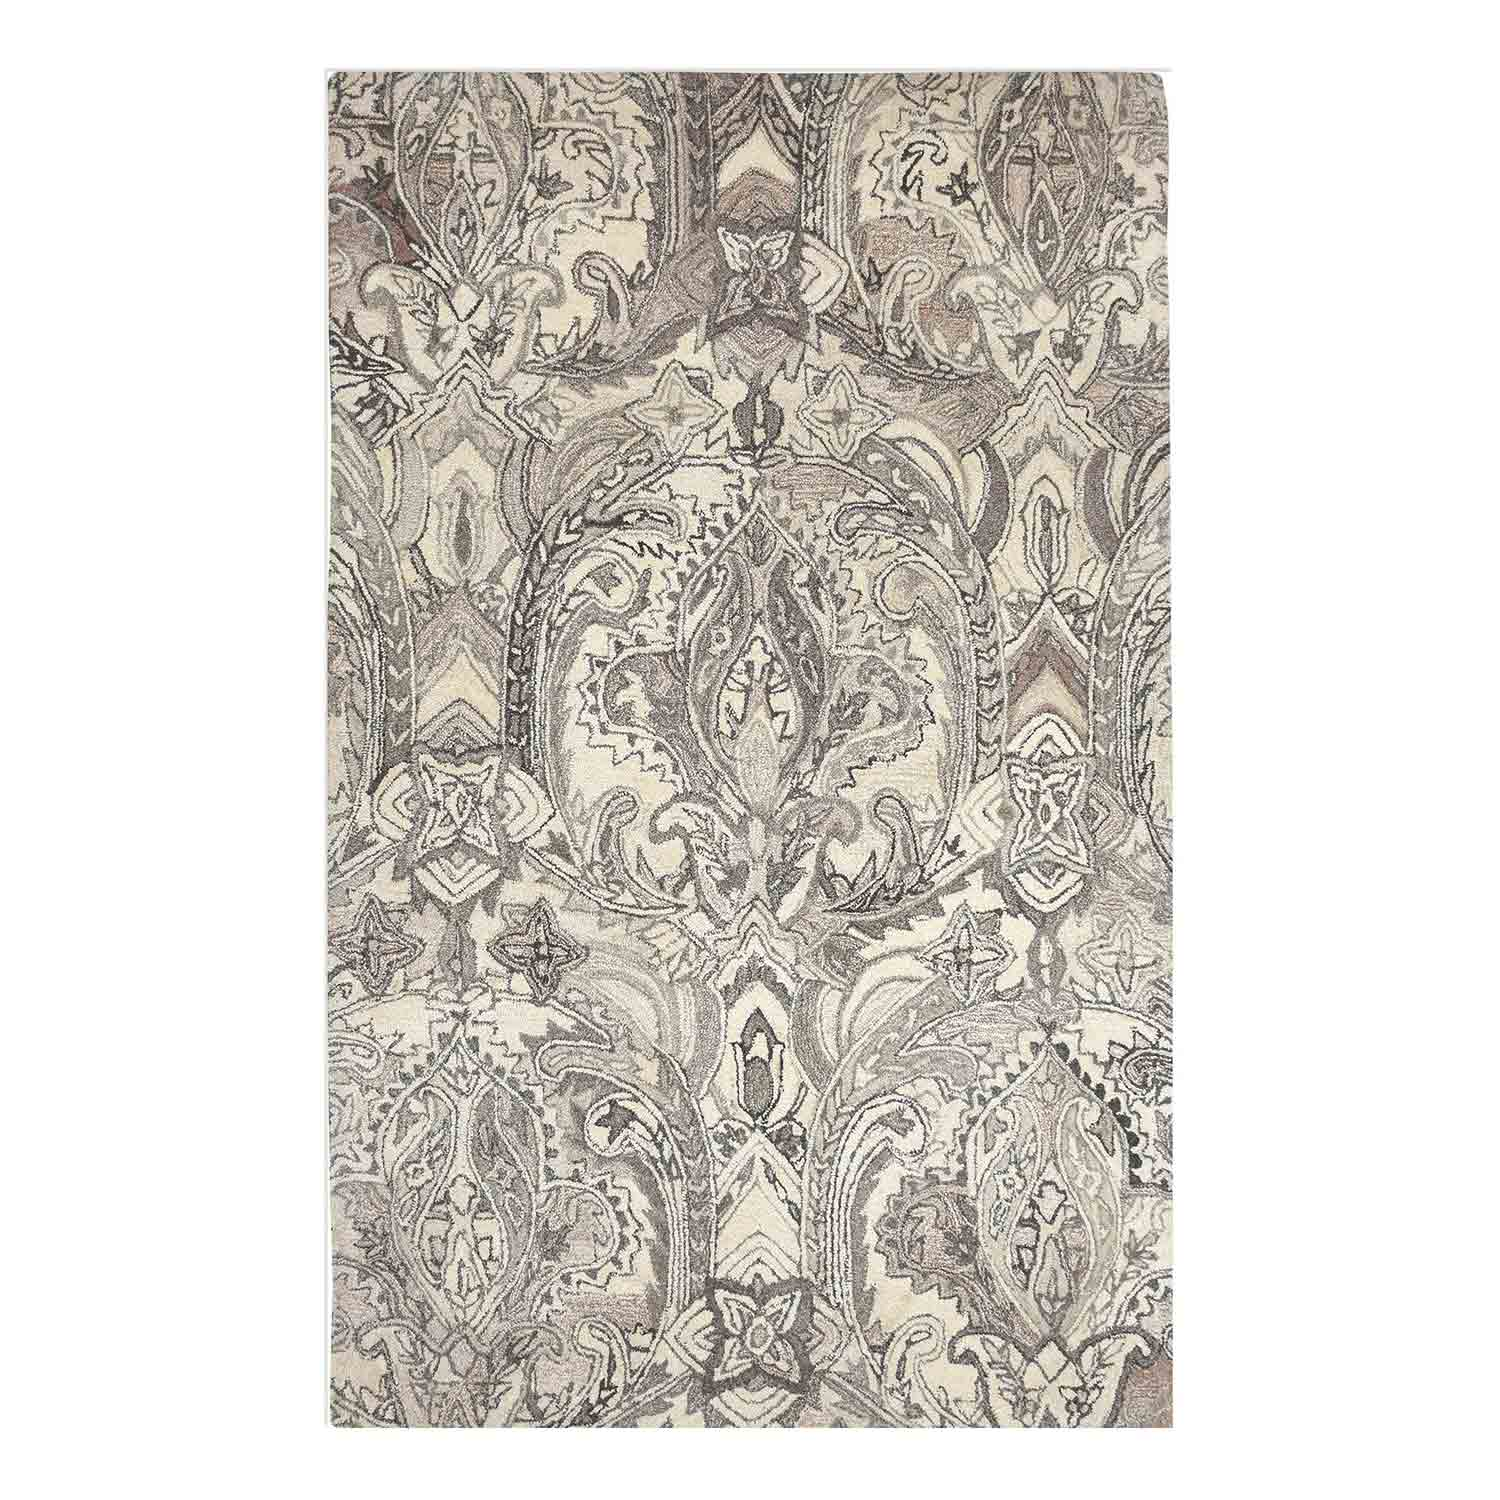 Uttermost Clairmont 9 x 12 Rug - Natural